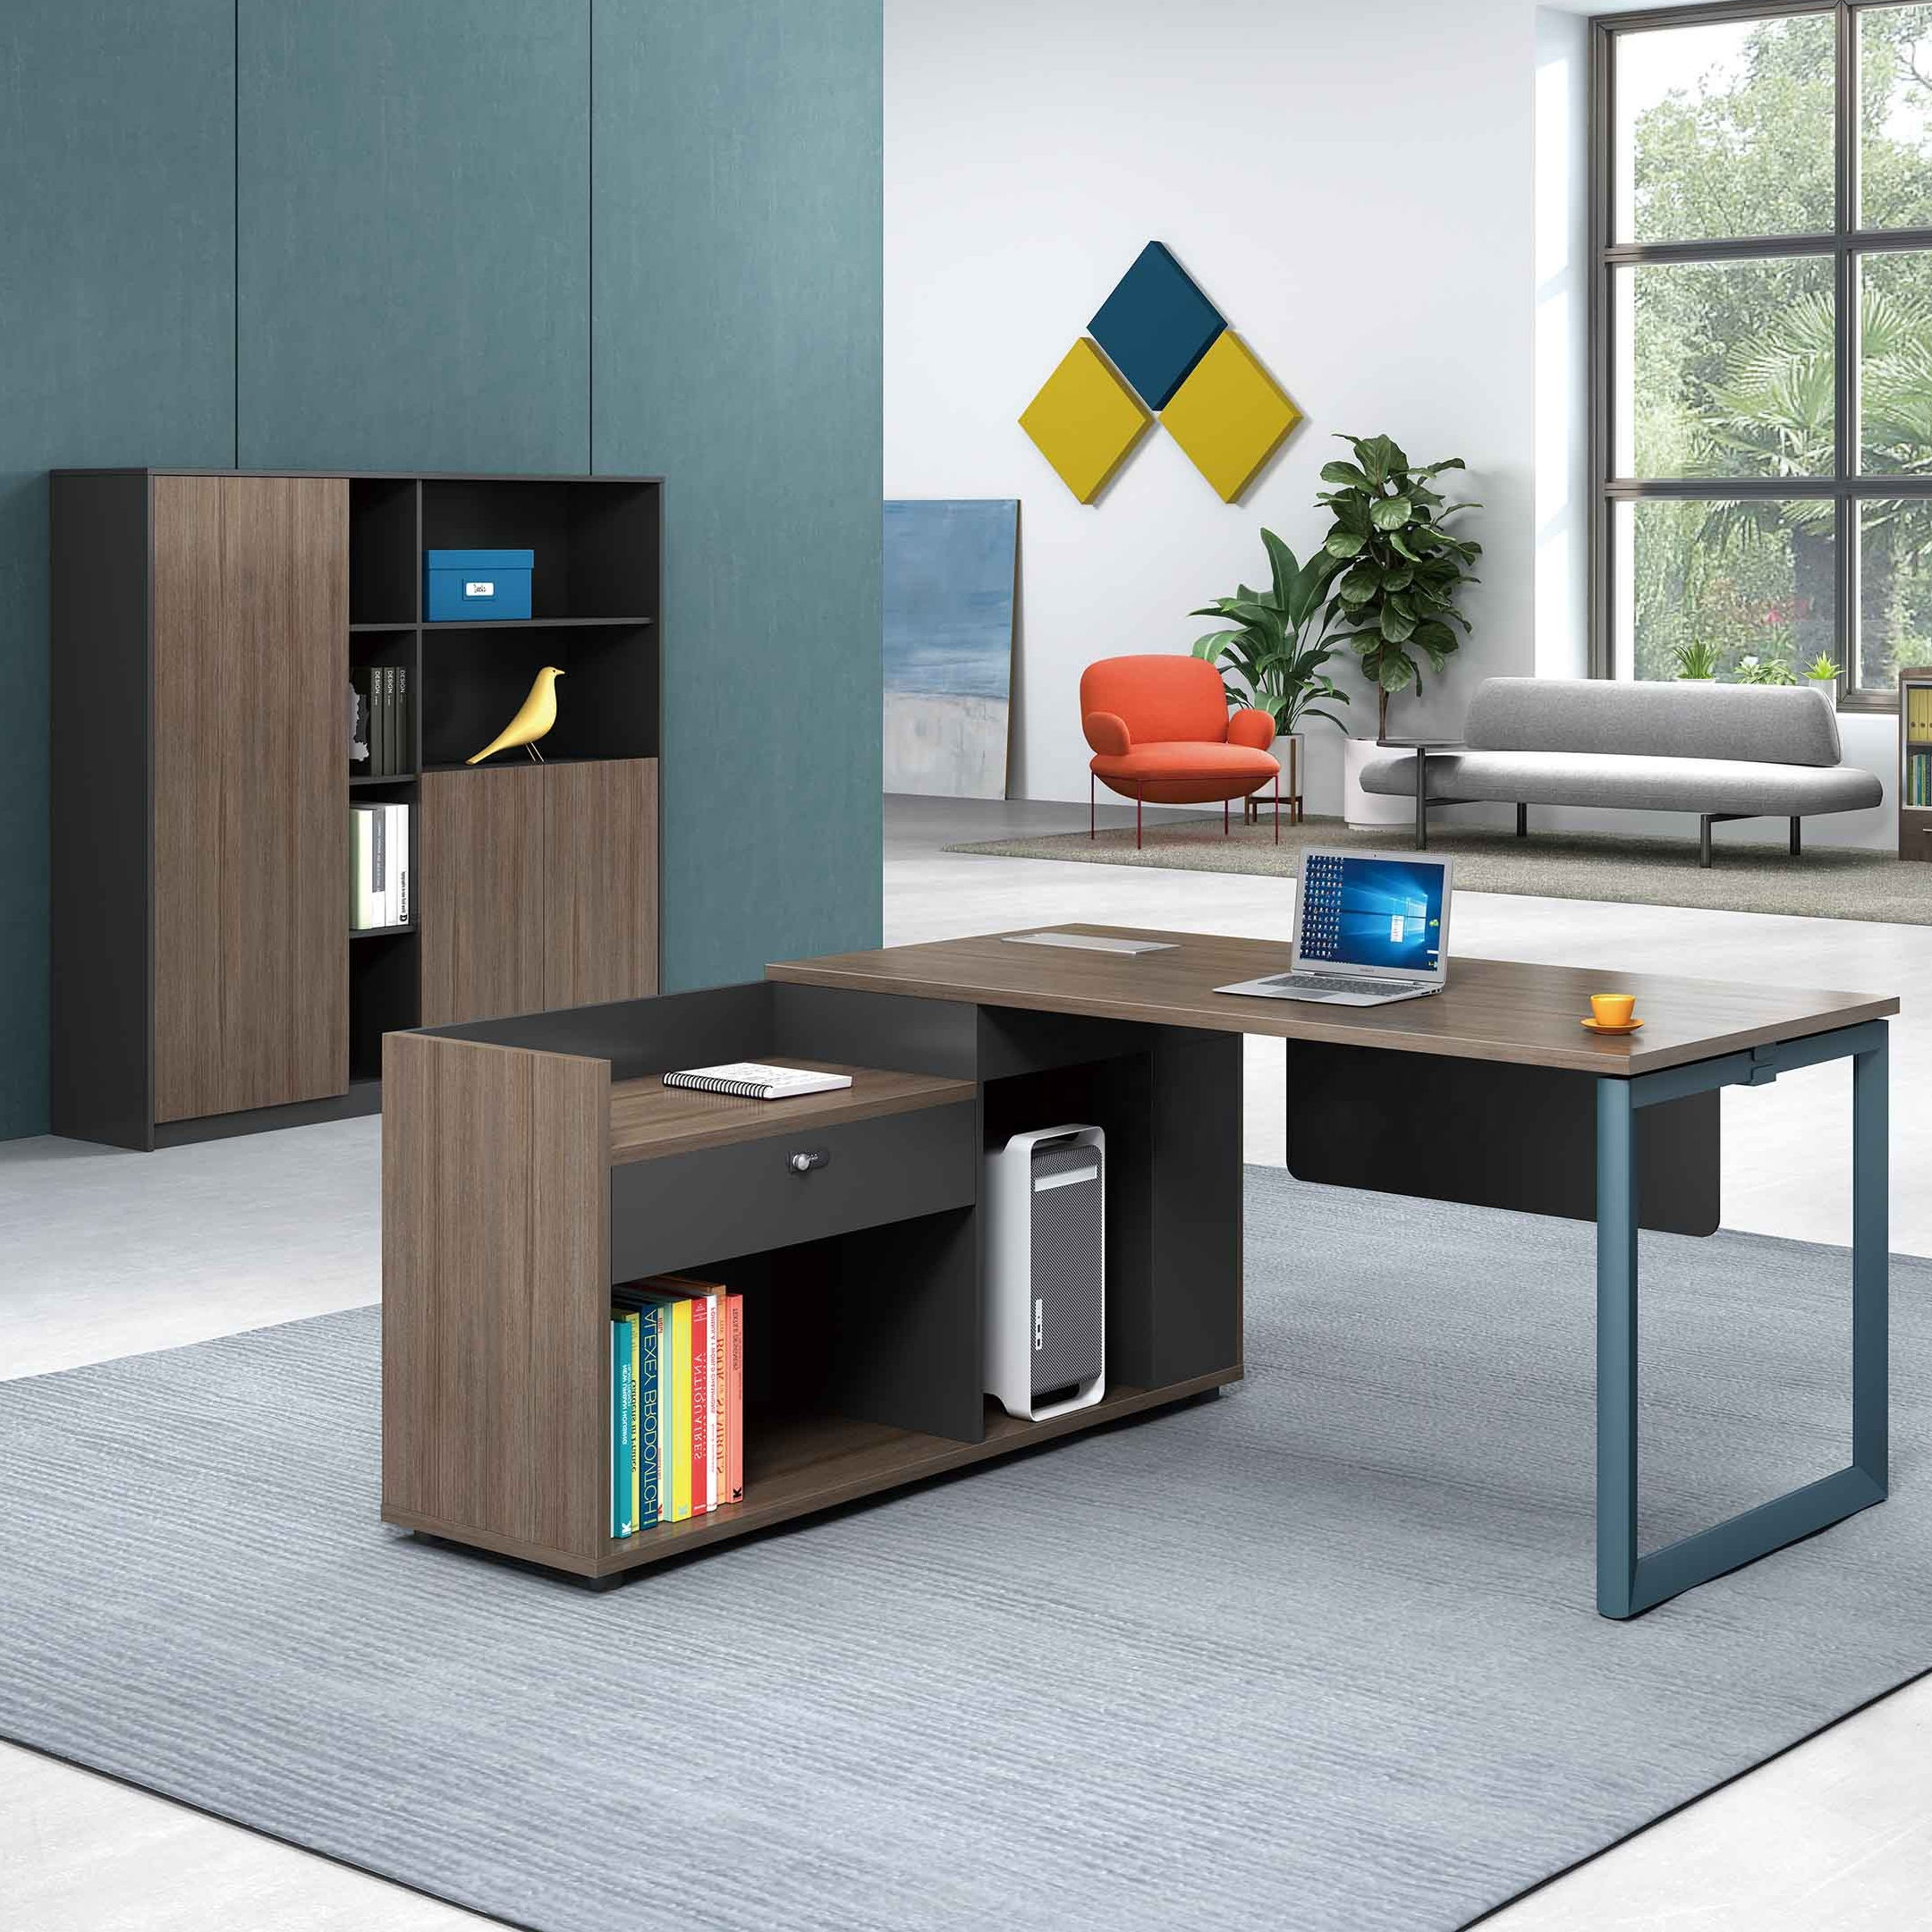 Latest Design Modern Commercial Office Furniture 1600mm Width Melamine Wooden Manager Executive Office Desk